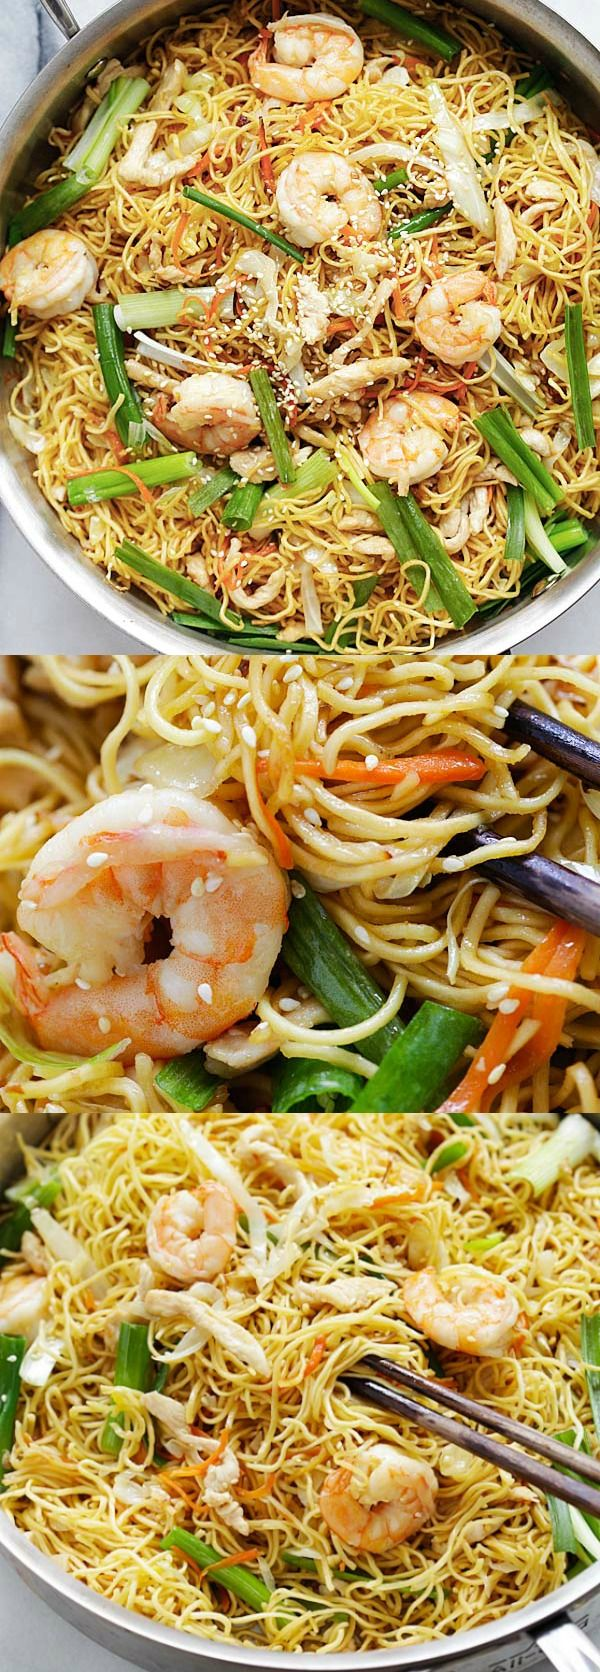 Chow Mein – quick and healthy Chinese fried noodles Chow Mein recipe that anyone can make at home. Tastes so much better than takeout | rasamalaysia.com